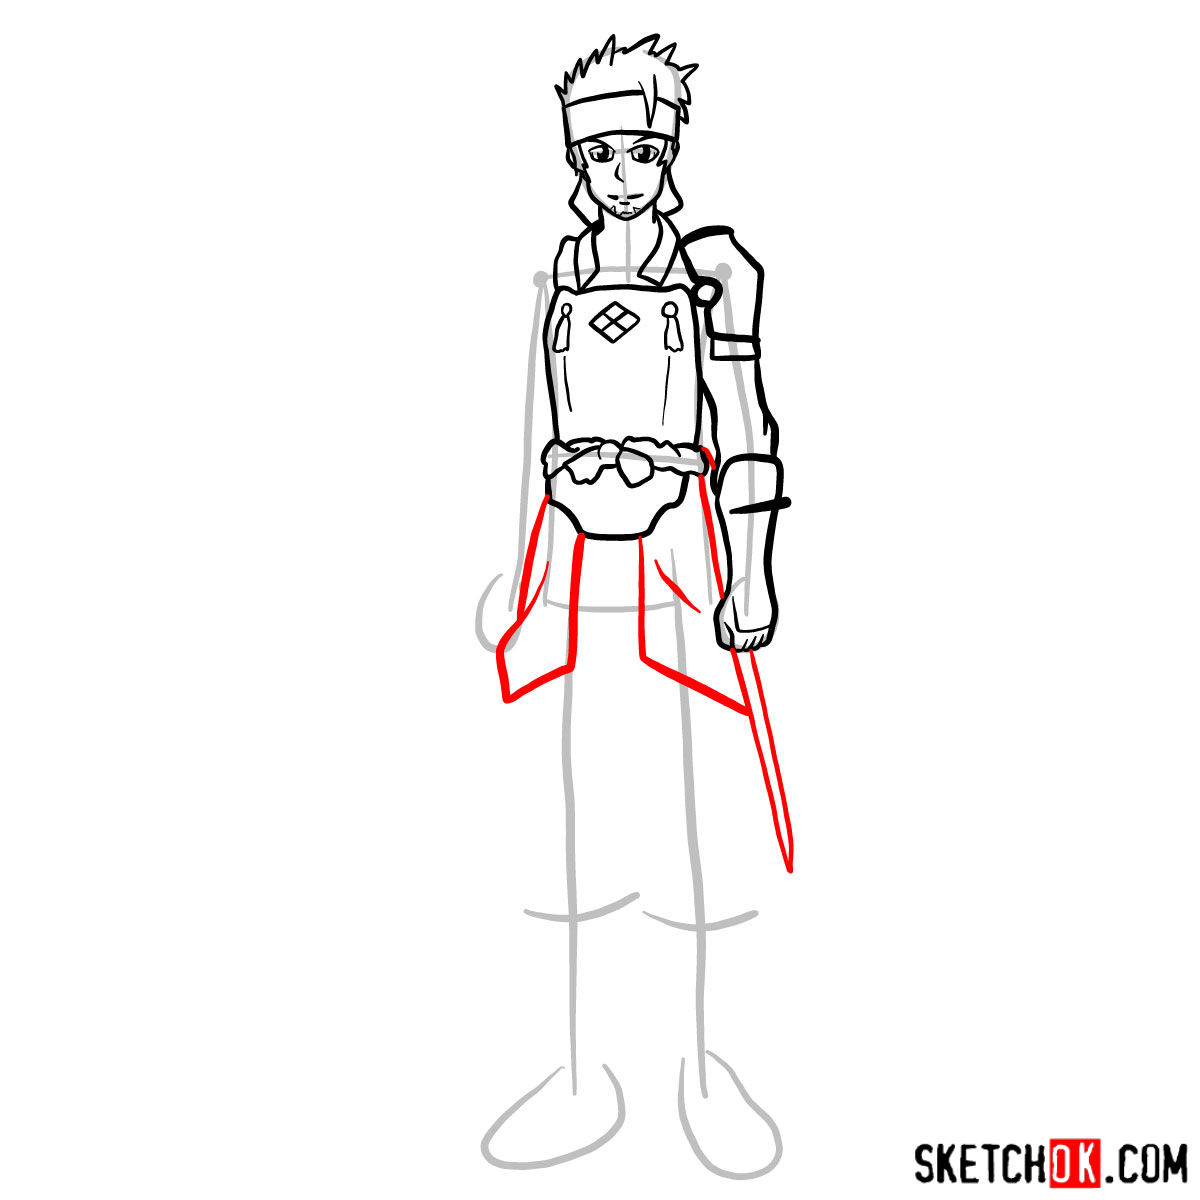 How to draw Klein from Sword Art Online - step 10